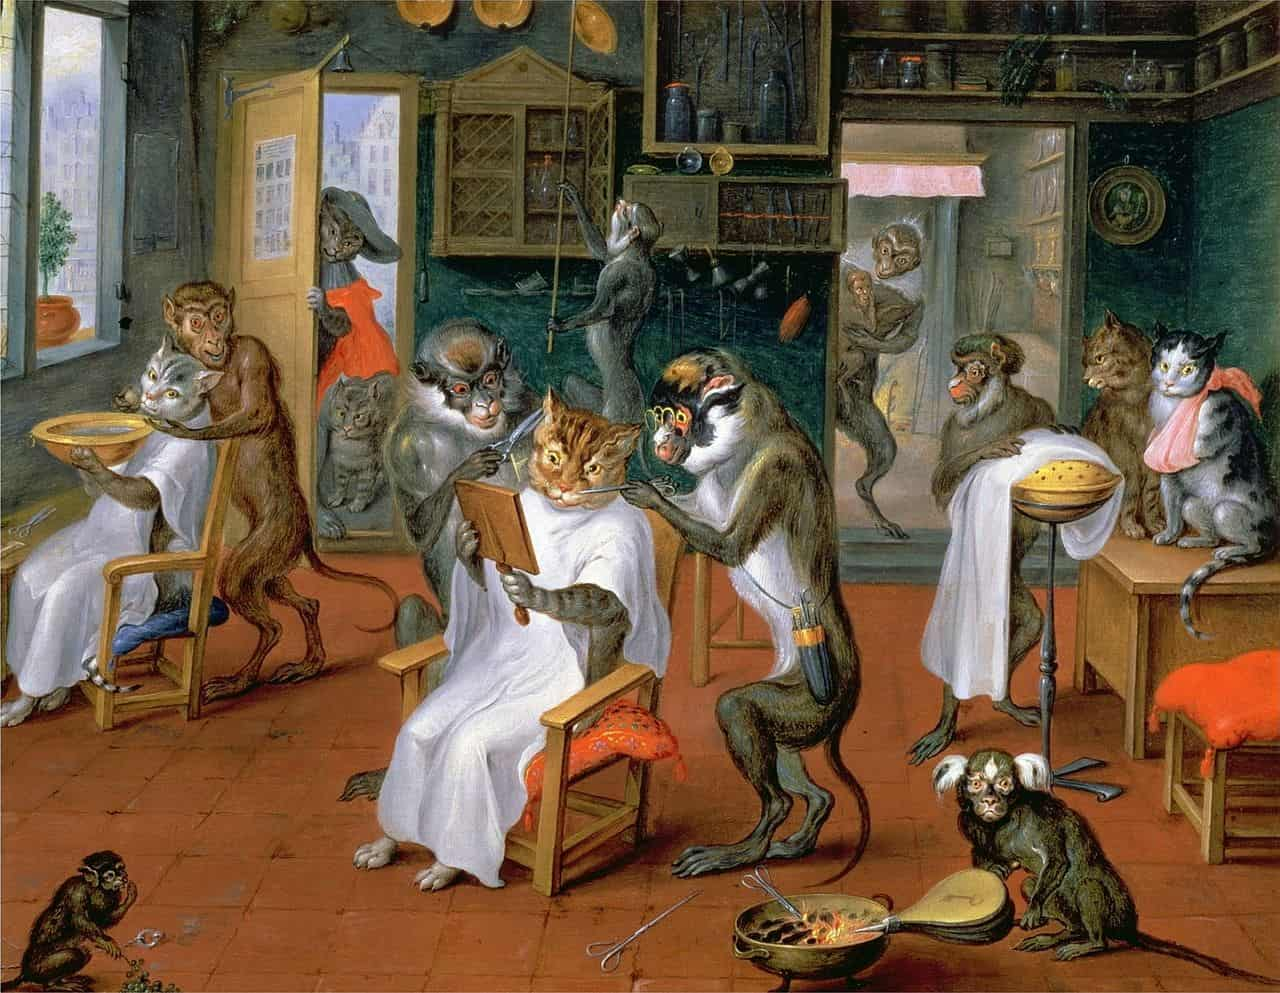 Abraham Teniers - painting monkeys and cats barbershop